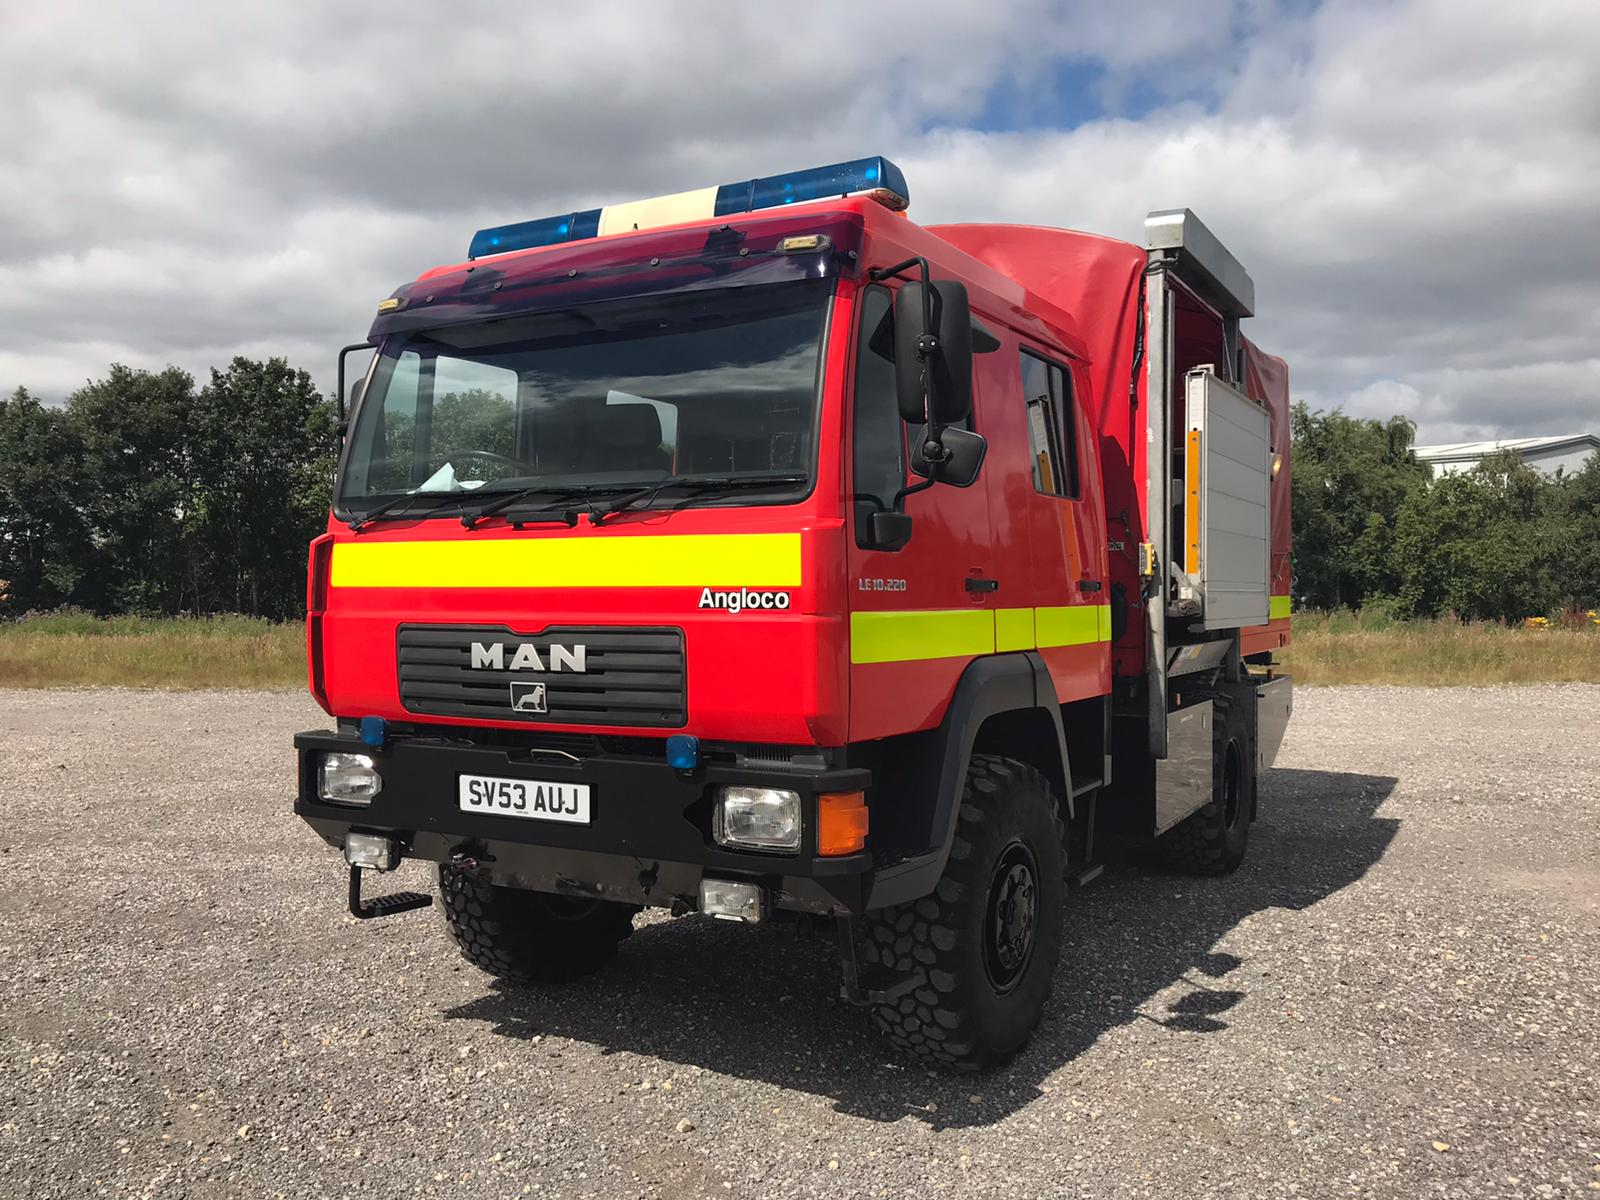 MoD Surplus, ex army military vehicles for sale - MAN LE 10.220 4x4 Crew Cab Truck (Not a Fire Engine)